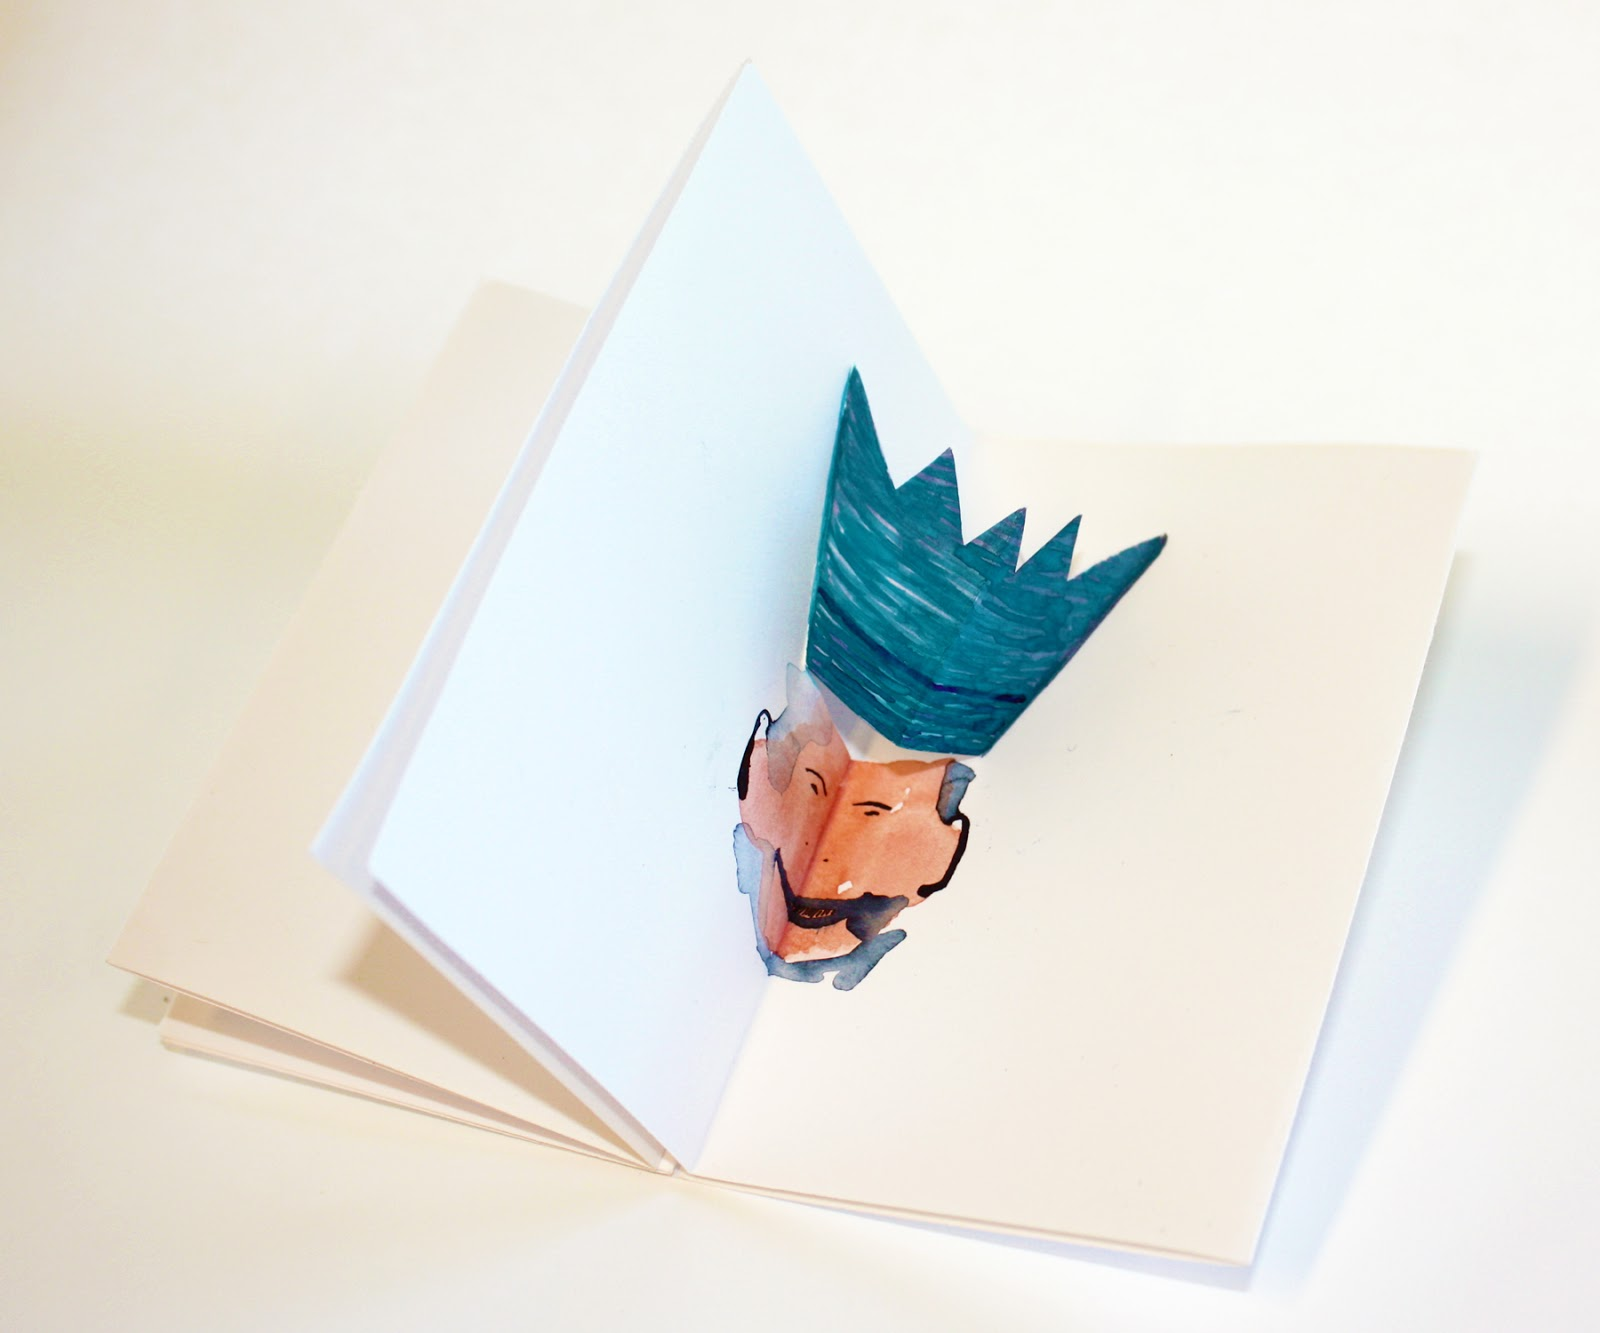 Walker library news free pop up book workshop there is no cost to participants free parking is available next to walker library and all materials and tools will be supplied but space is limited solutioingenieria Choice Image